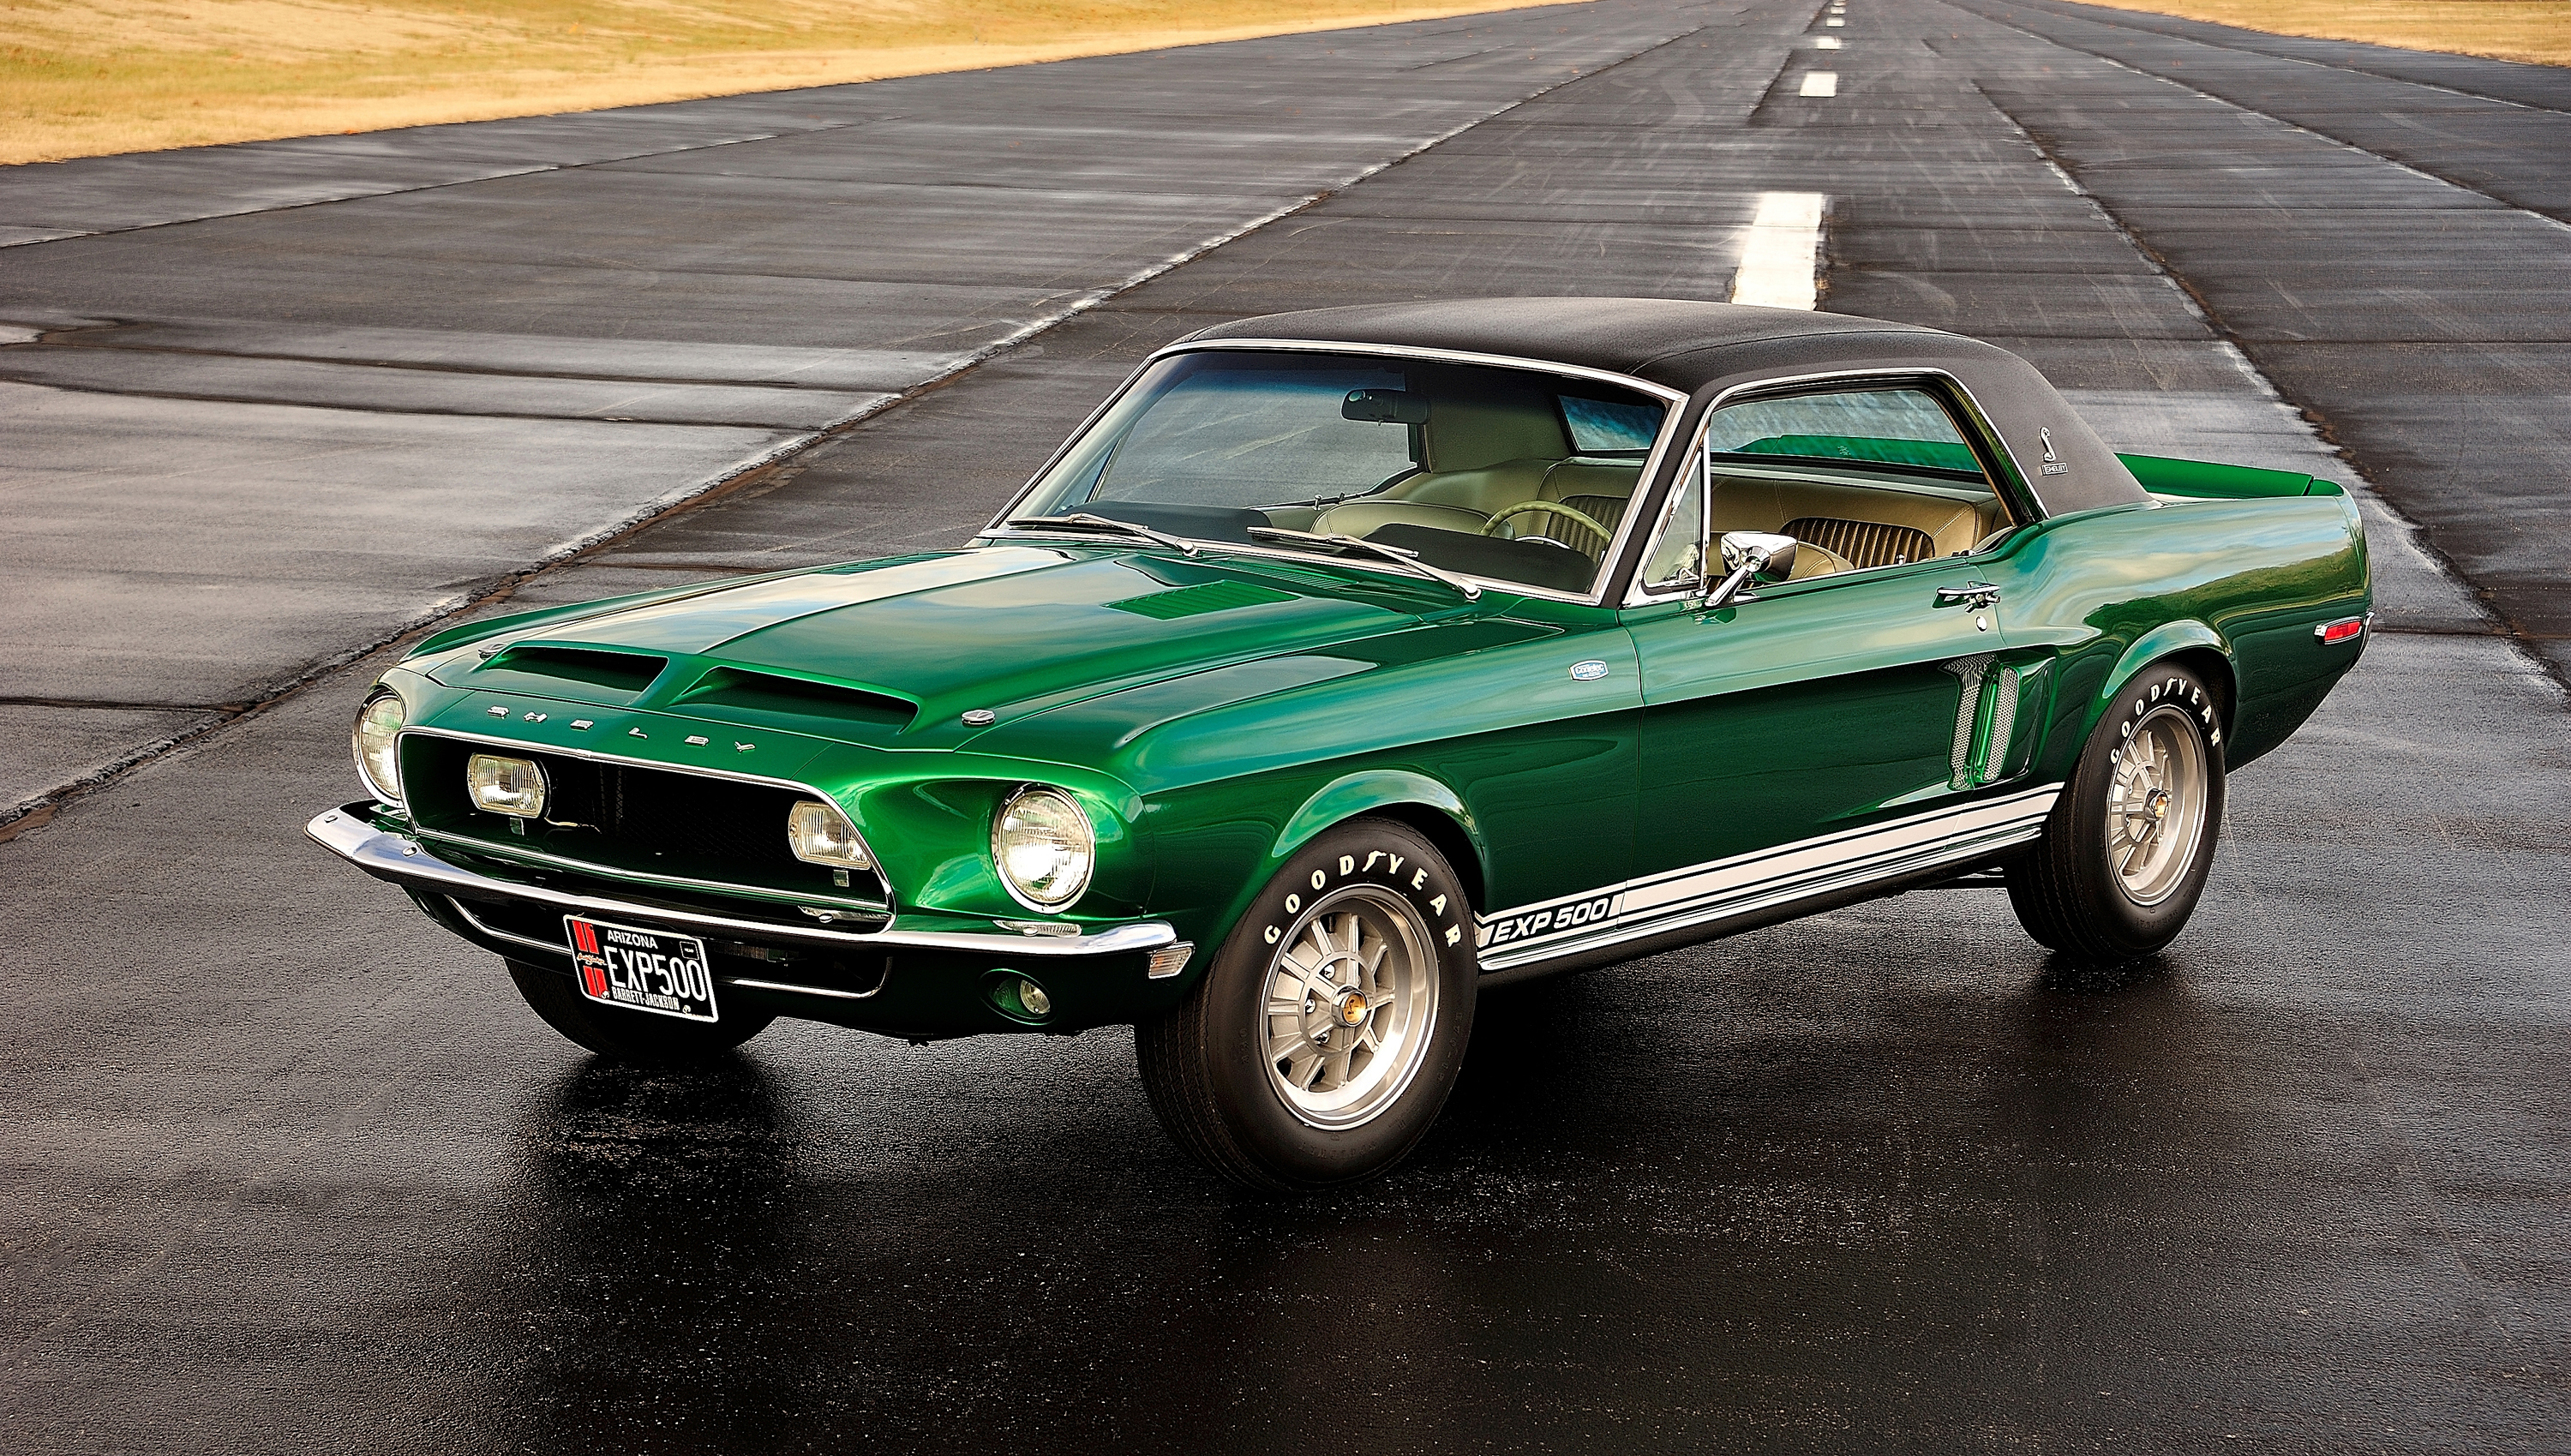 """The 1968 """"Green Hornet"""" Mustang prototype is freshly restored to Shelby-spec thumbnail"""